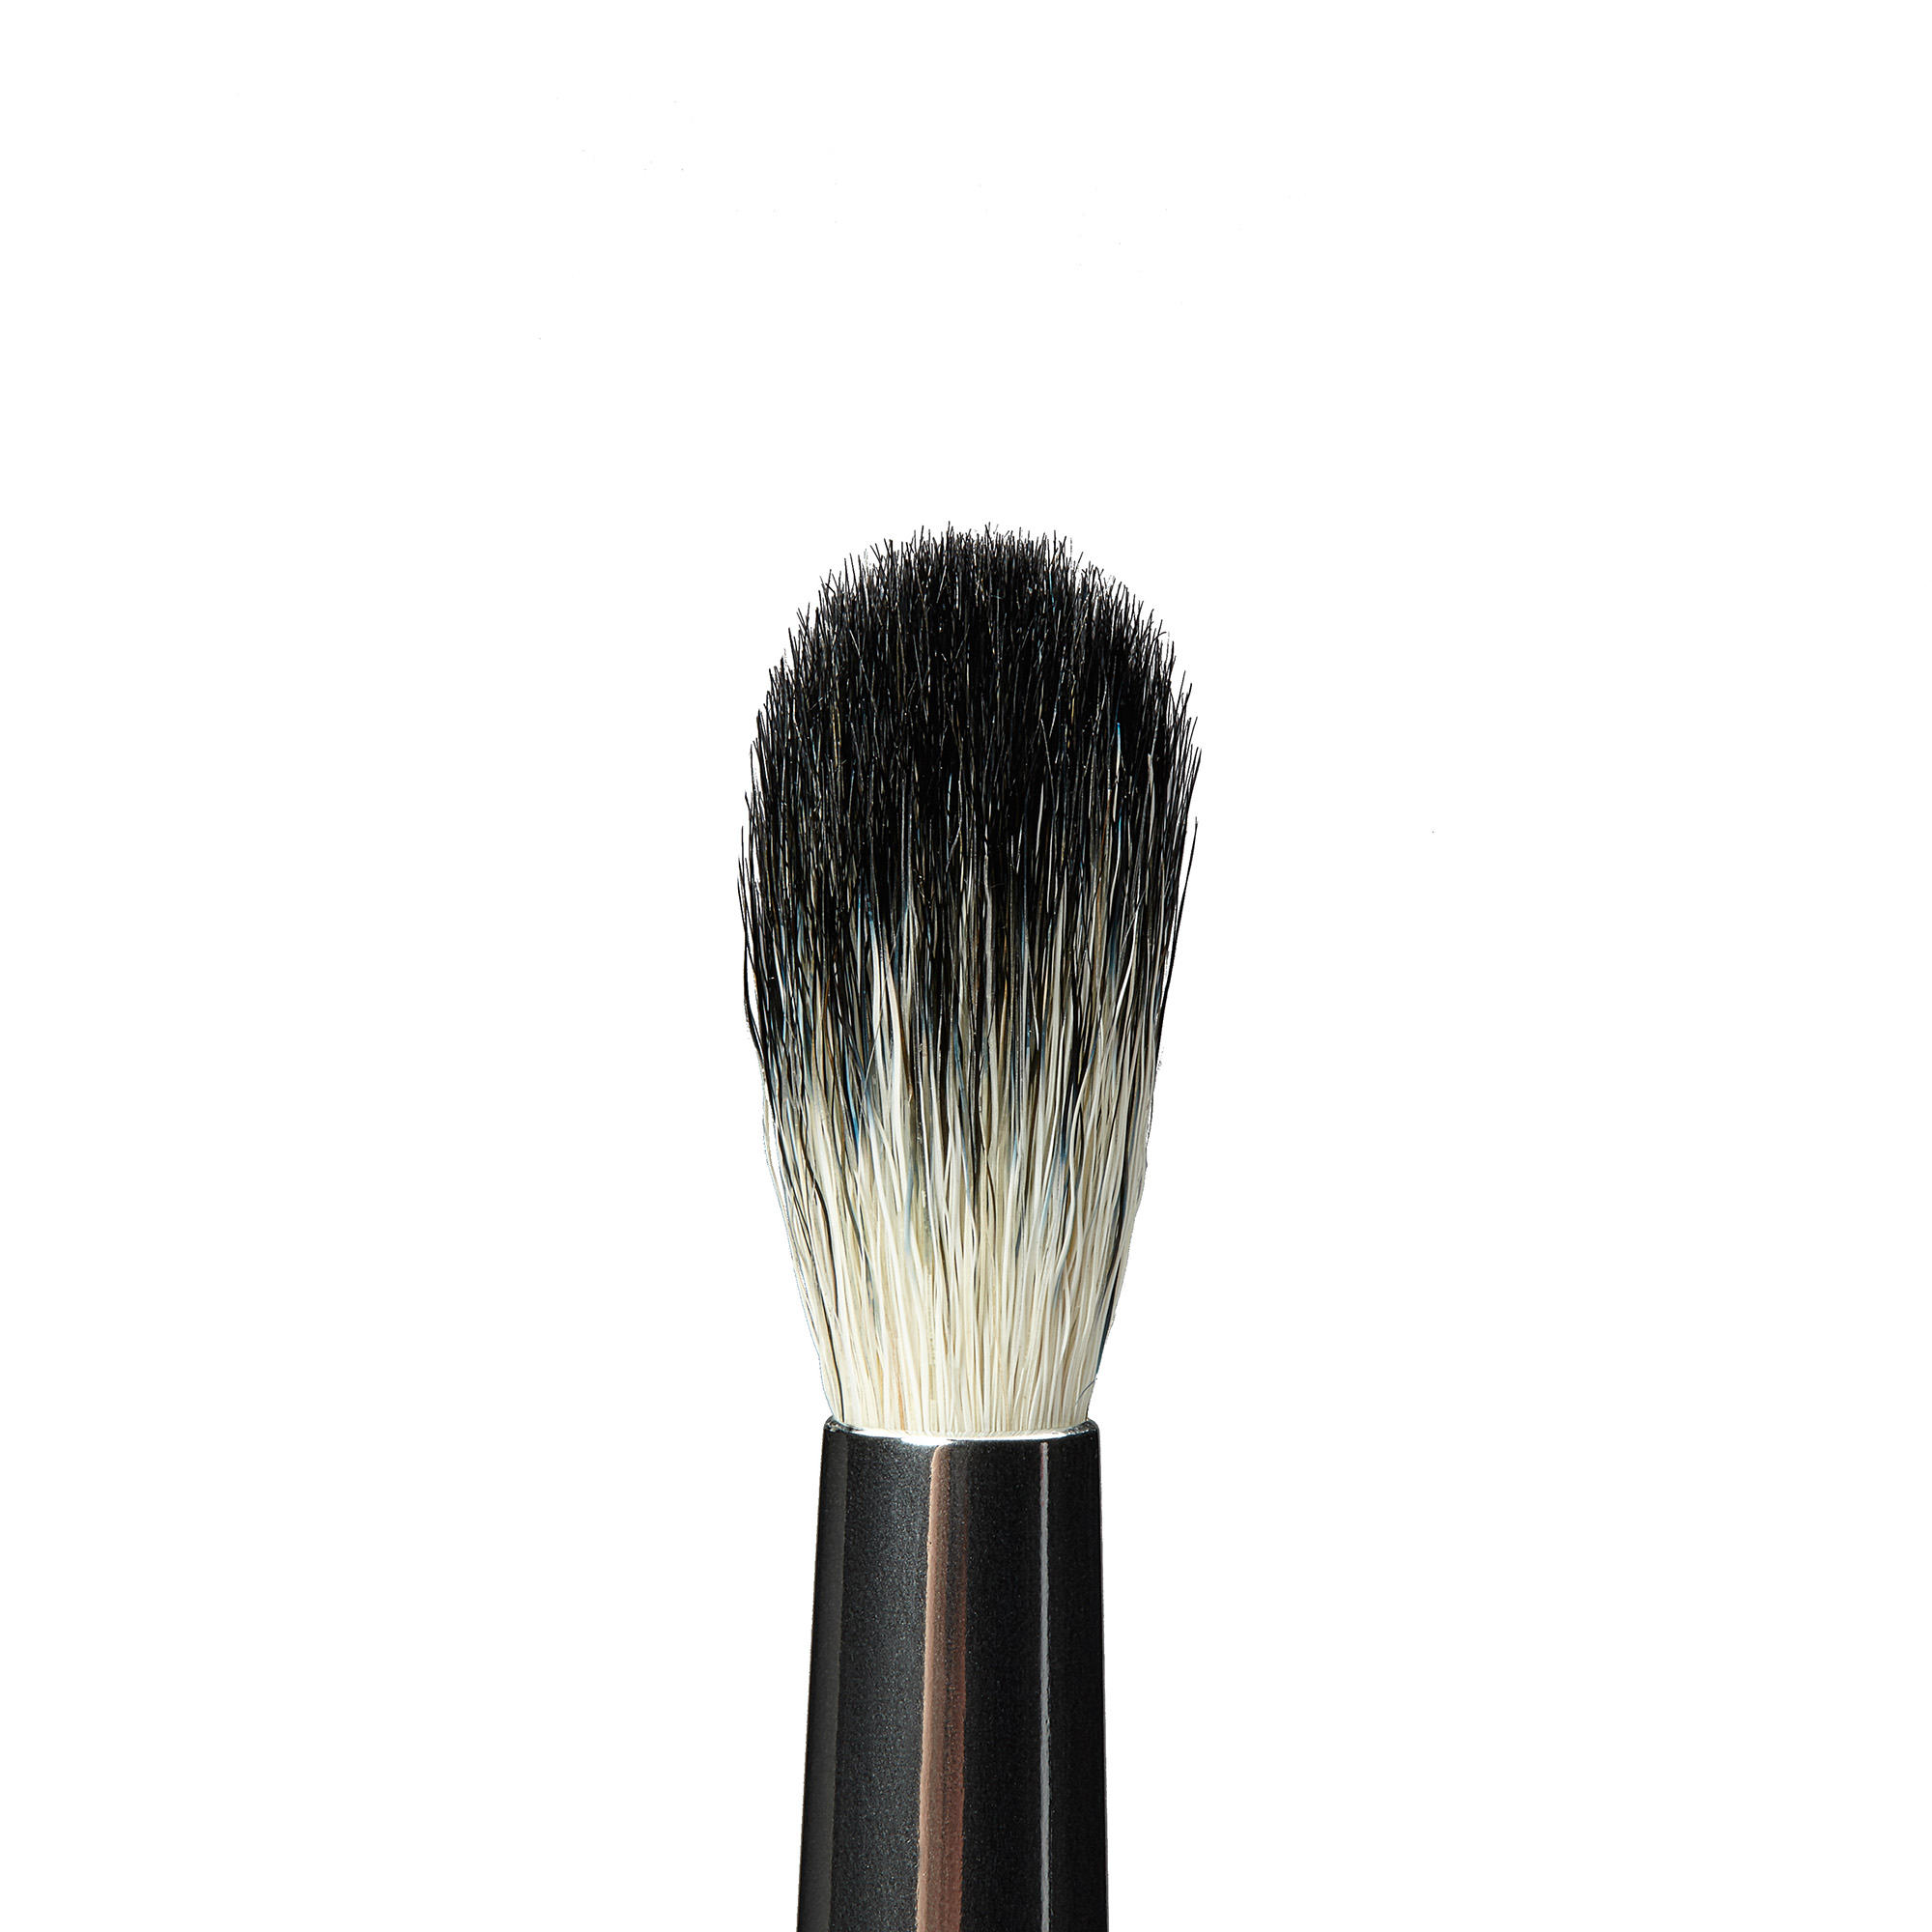 Pro Brush- A25 Tapered Blending Brush